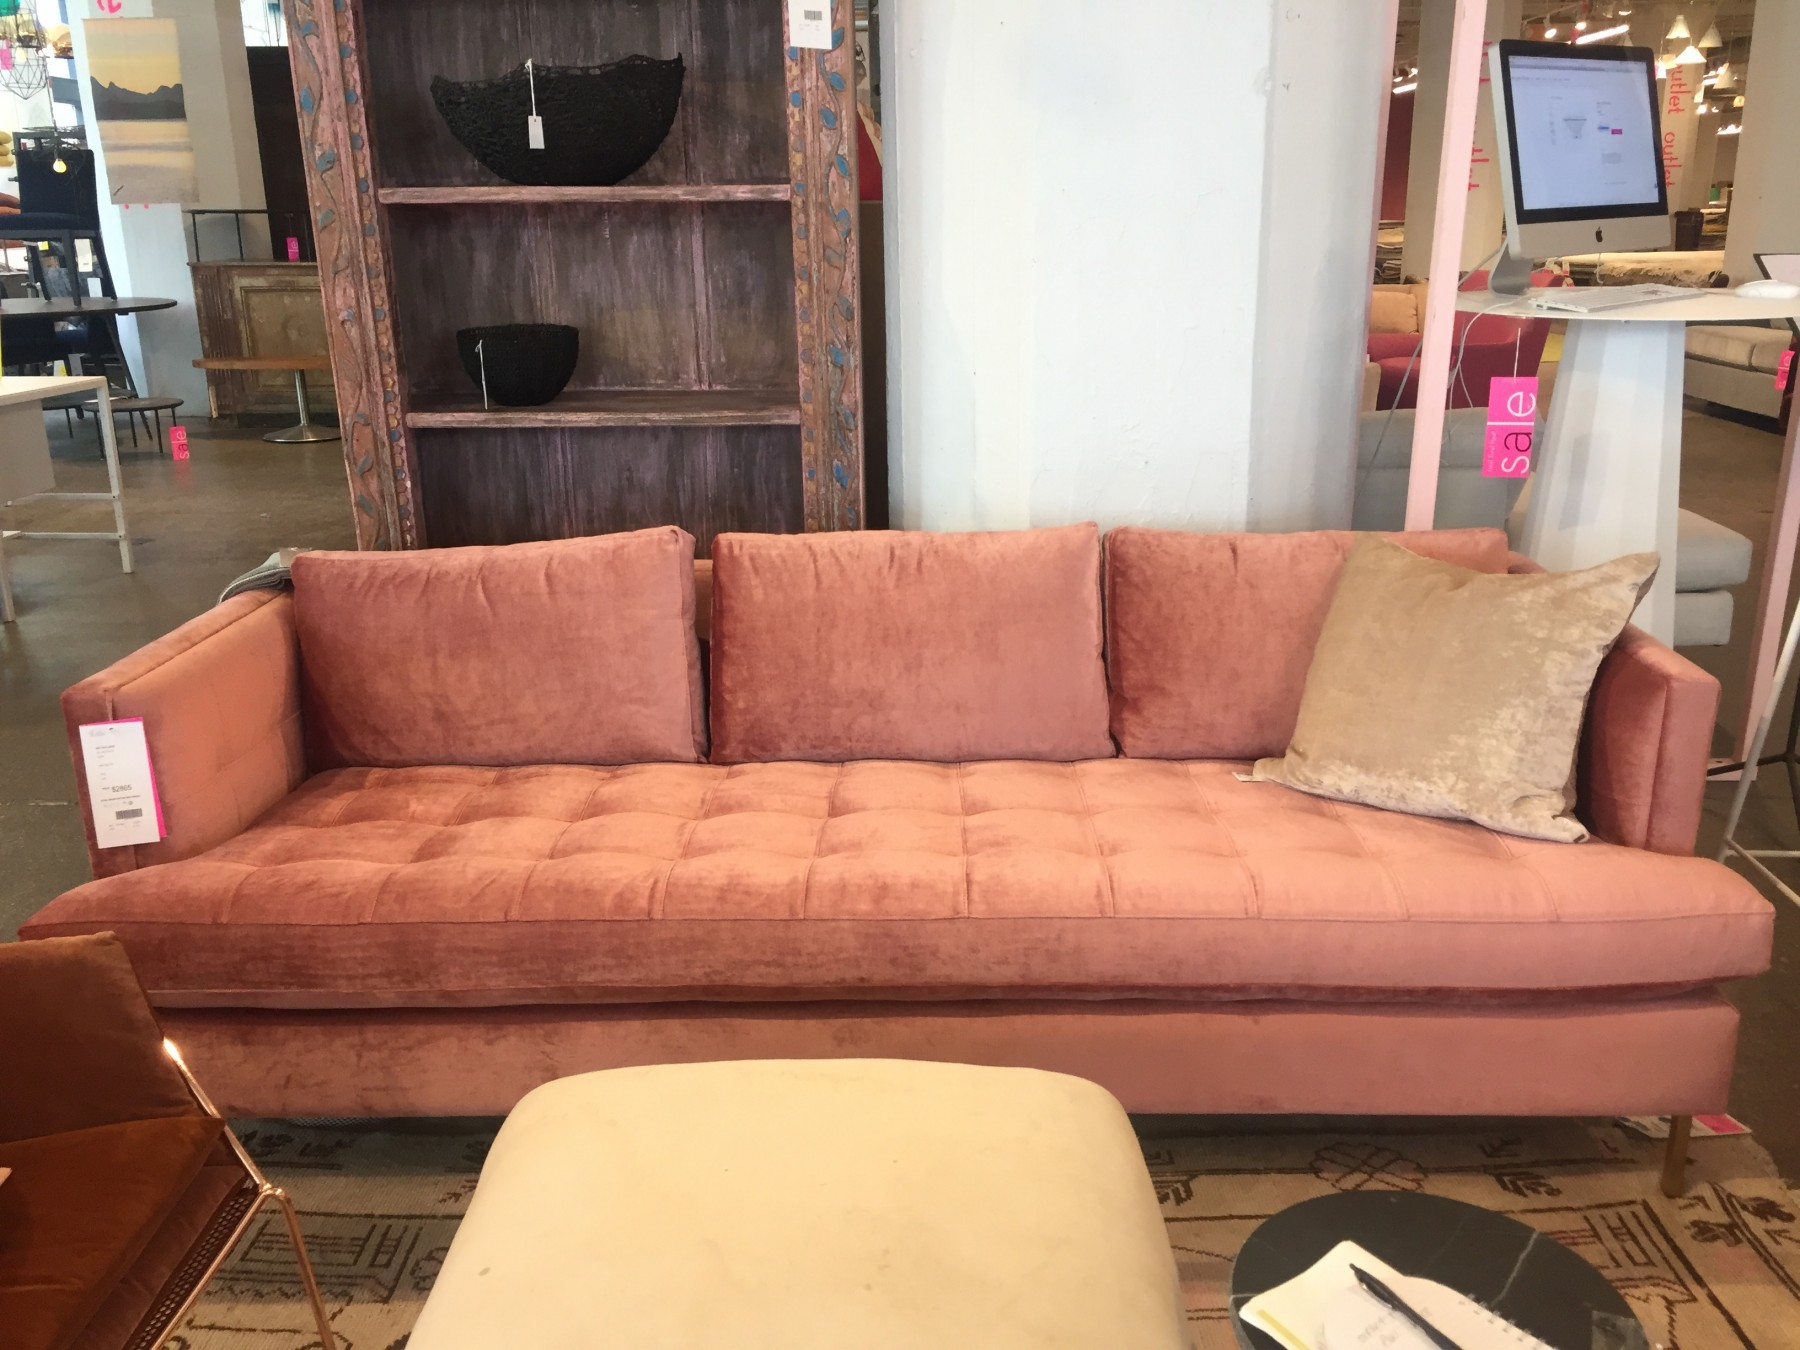 Stupendous We Shopped Industry Citys High End Furniture Outlets With Beatyapartments Chair Design Images Beatyapartmentscom